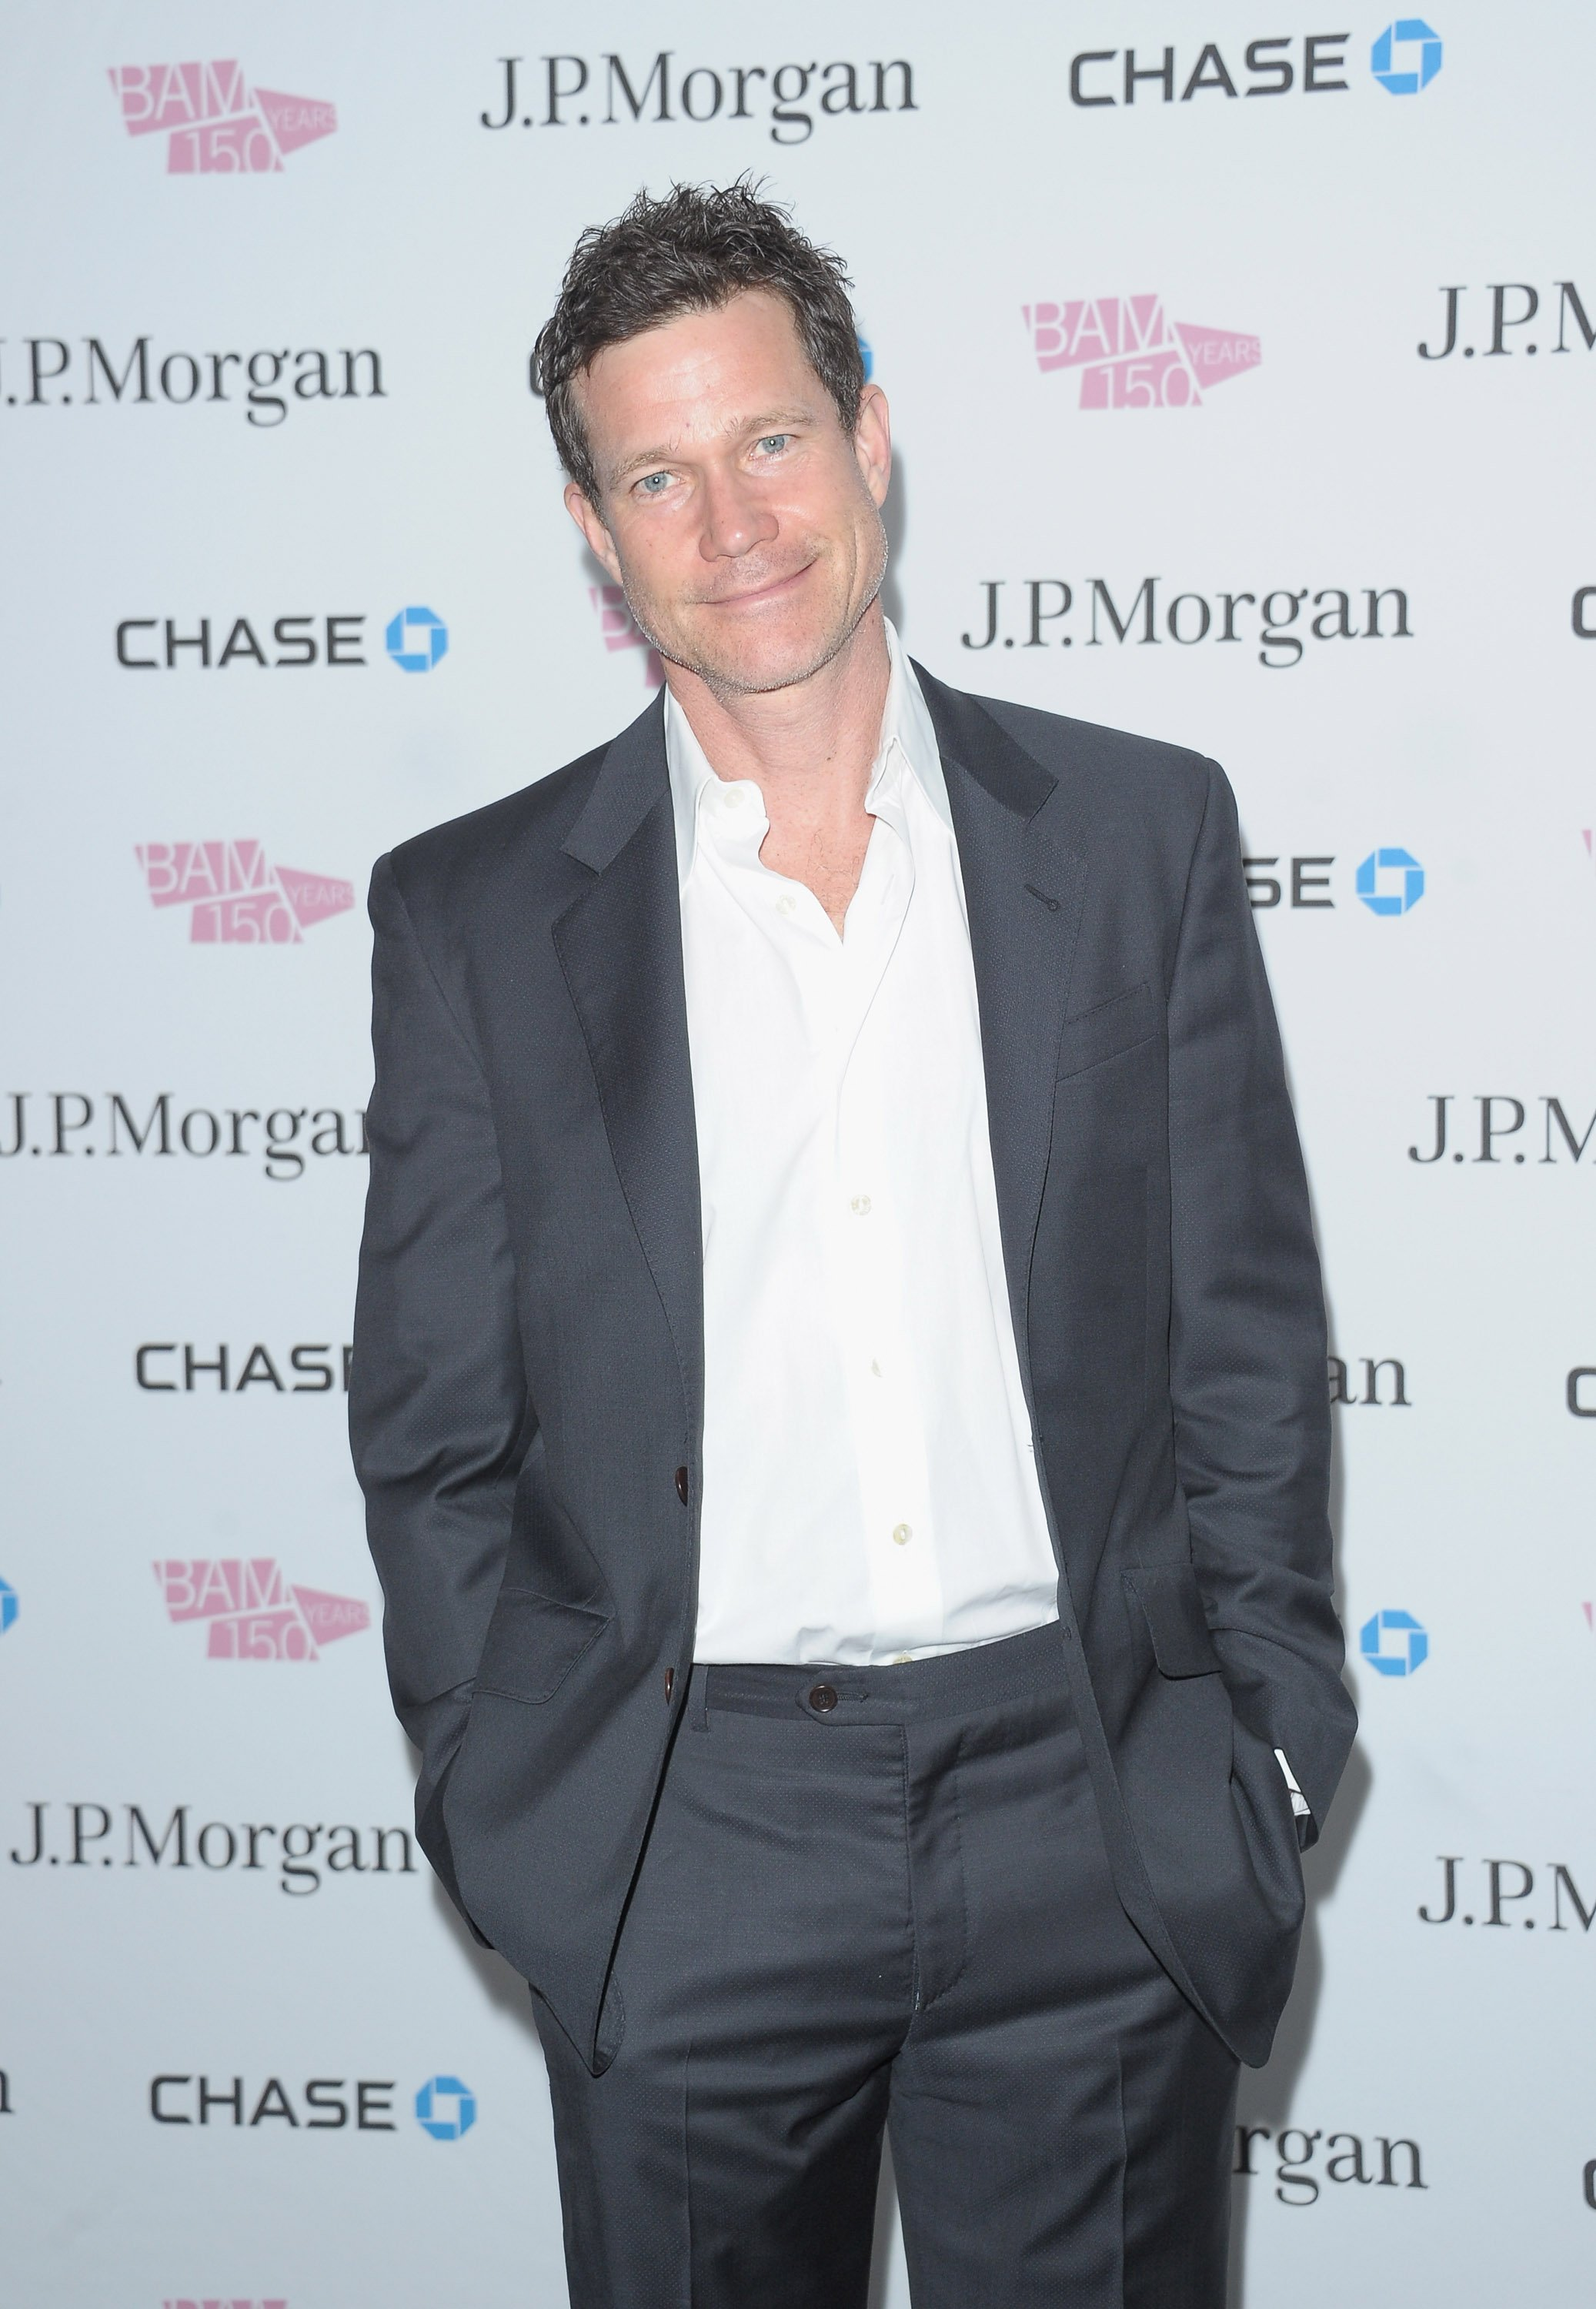 Dylan Walsh during the BAM 150th Anniversary gala. | Source: Getty Images